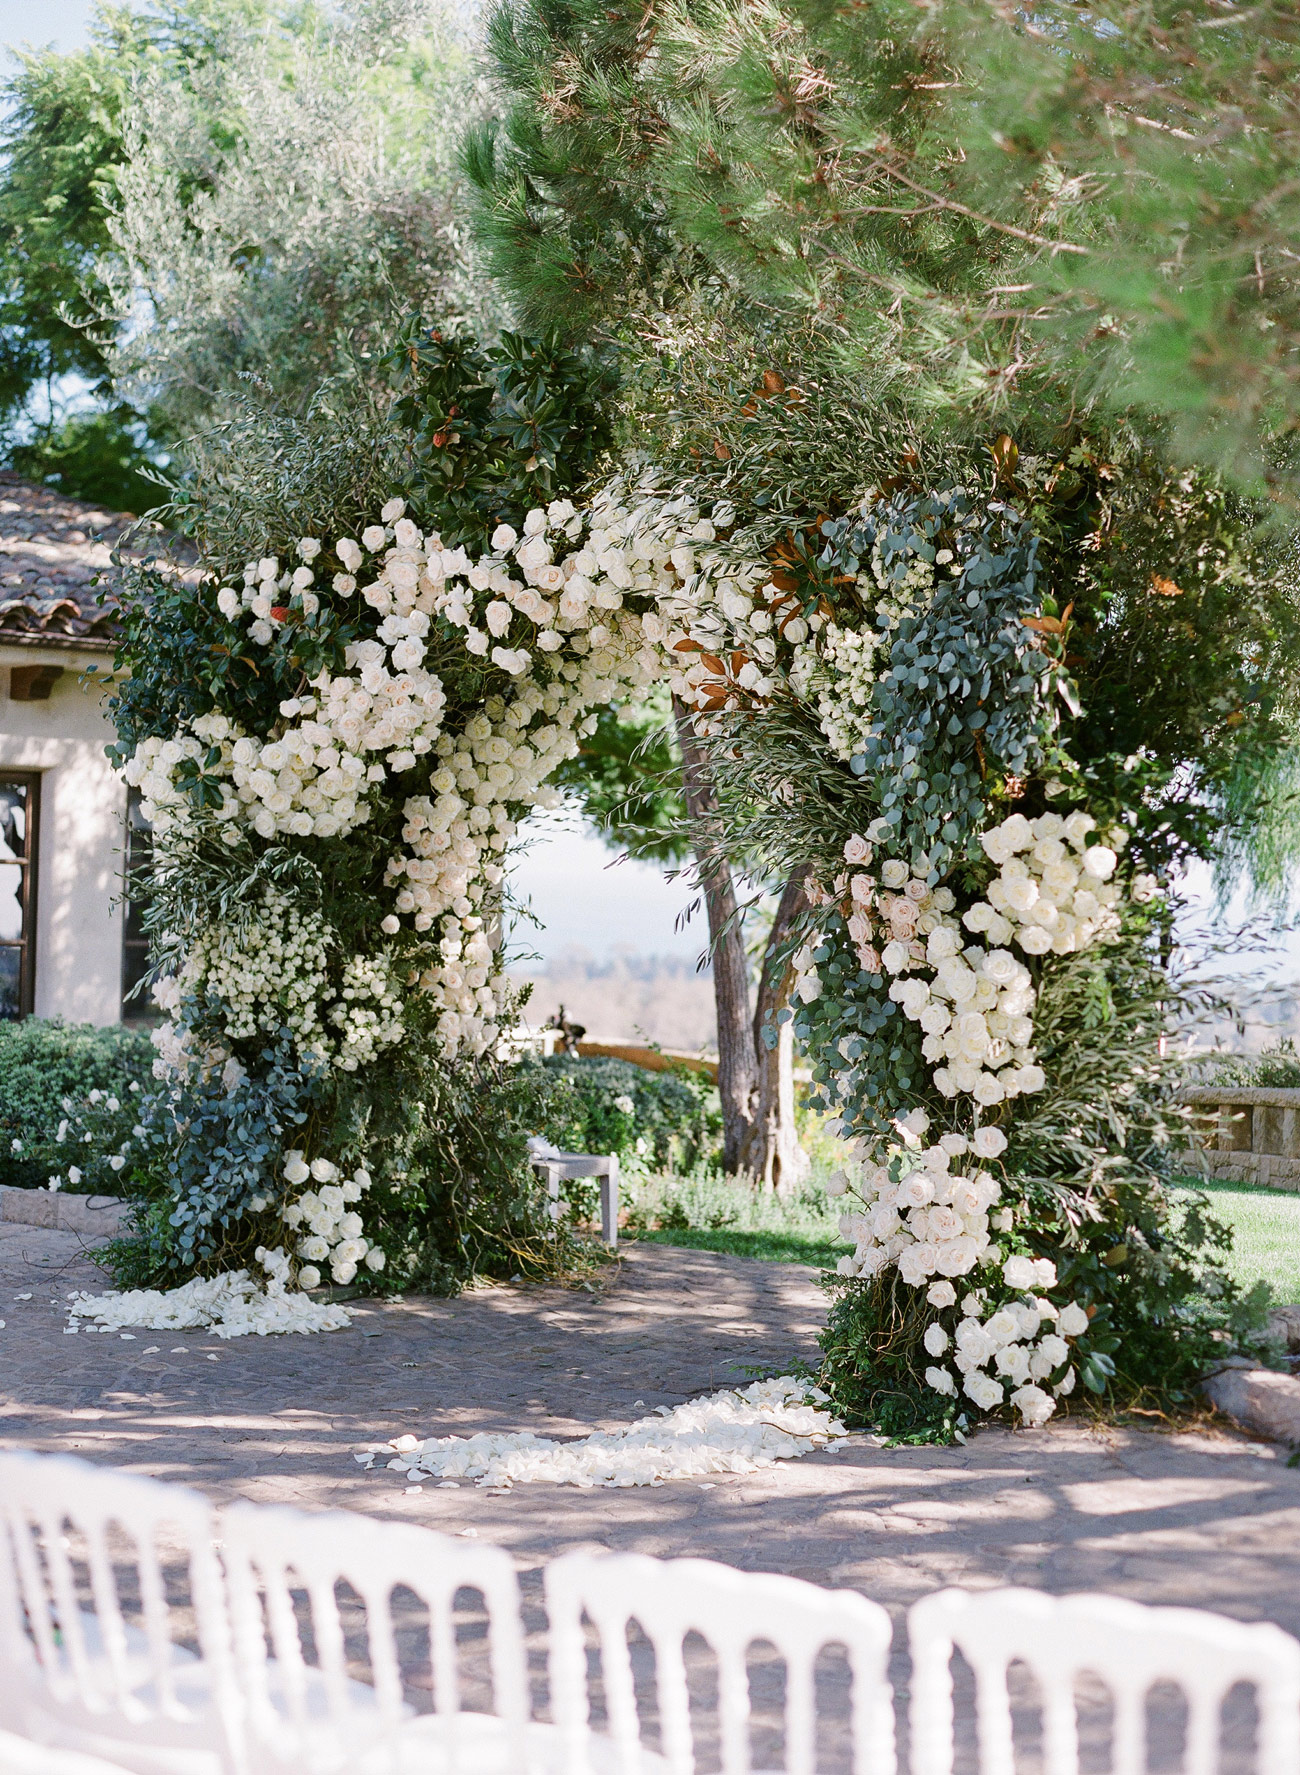 close-up wedding arch decorated with greenery white roses